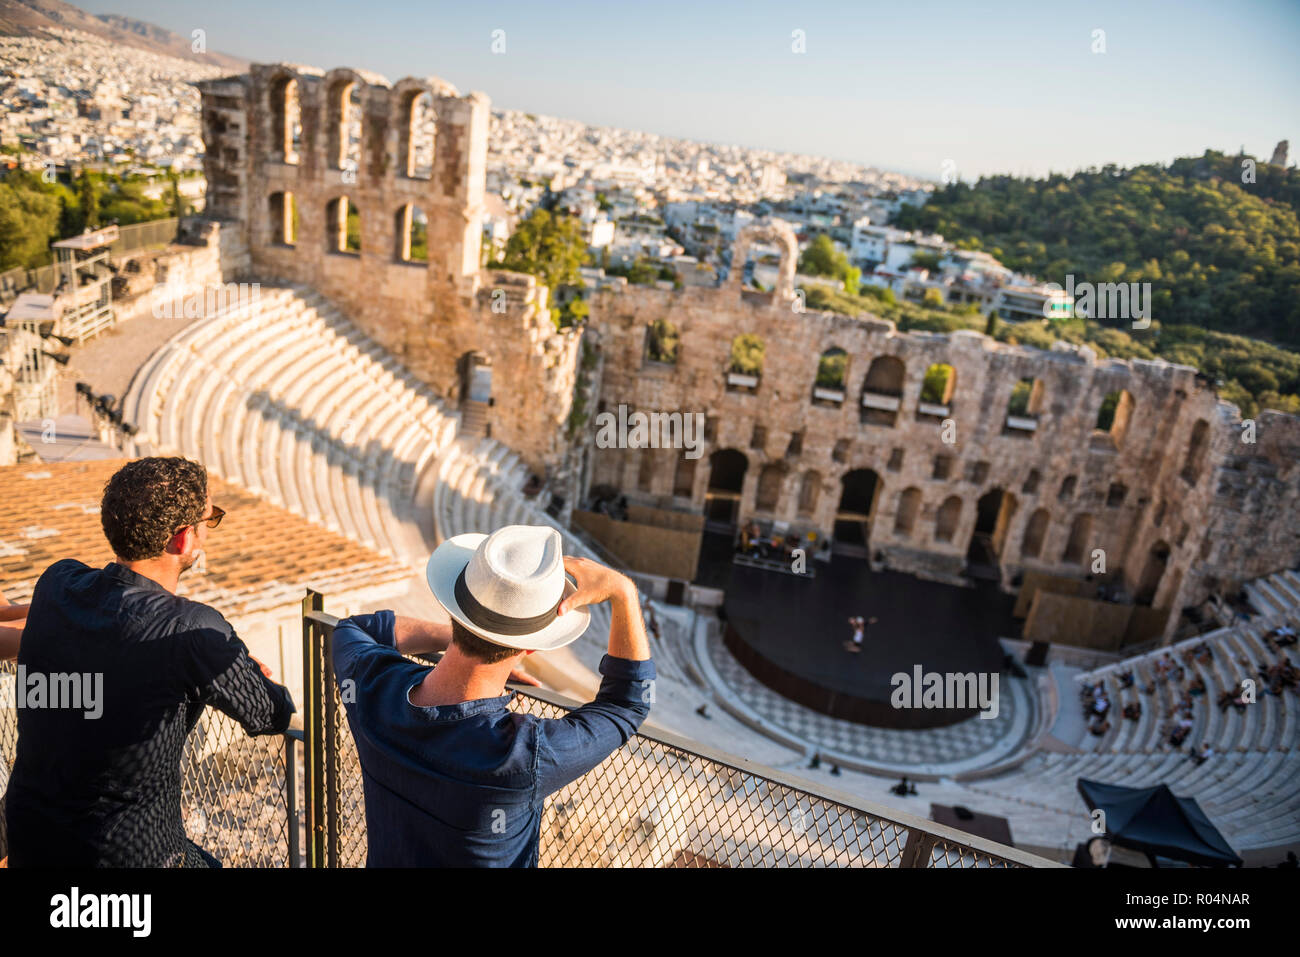 Tourists at Odeon of Herodes Atticus Theatre, by the Acropolis, UNESCO World Heritage Site, Athens, Attica Region, Greece, Europe - Stock Image